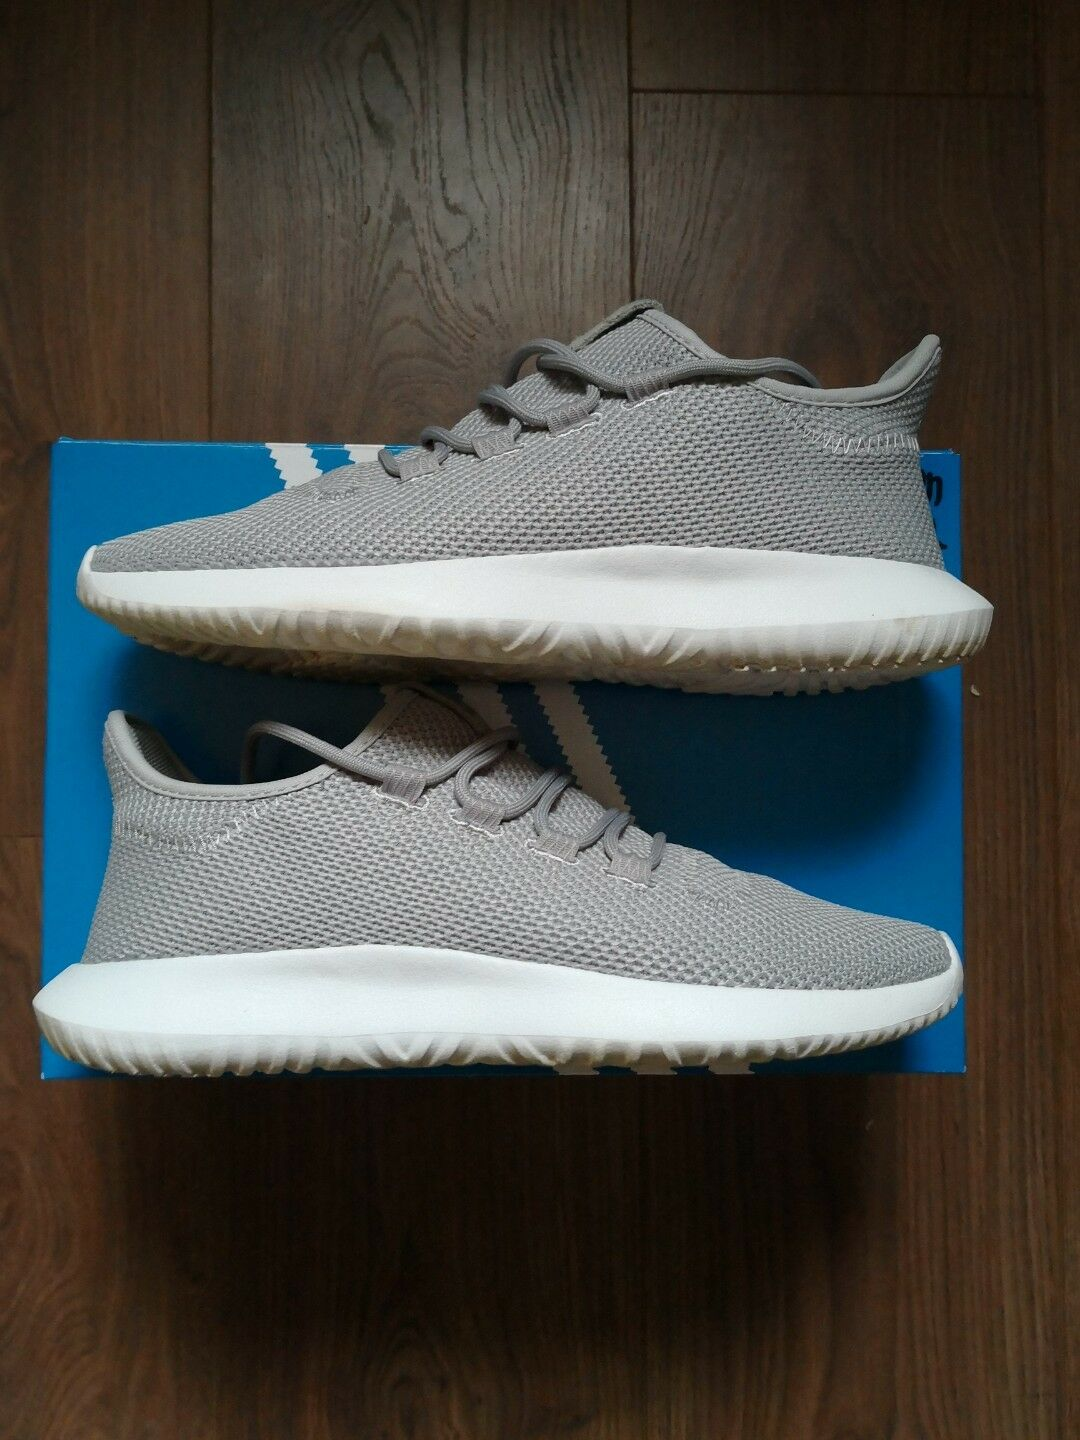 ADIDAS TUBULAR SHADOW GREY MESH USED EXCELLENT CONDITION Special limited time